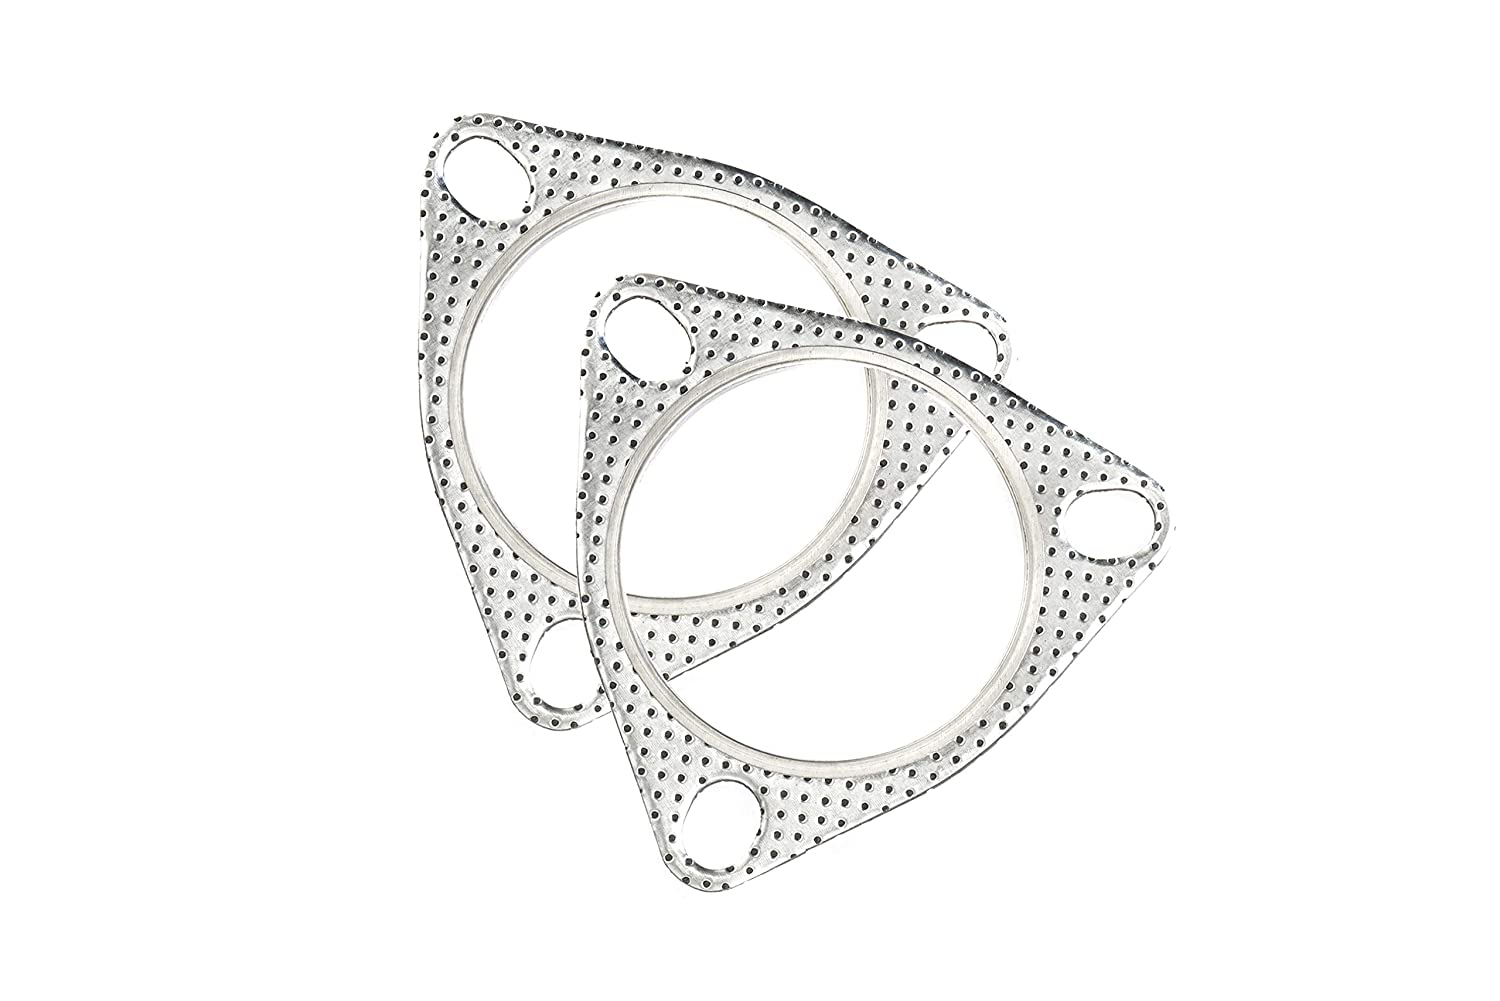 CarXX 3 Exhaust Gasket 77mm 3-Bolt Flange High Temperature Graphite for Headers Downpipe 2 Pack Catback Axleback